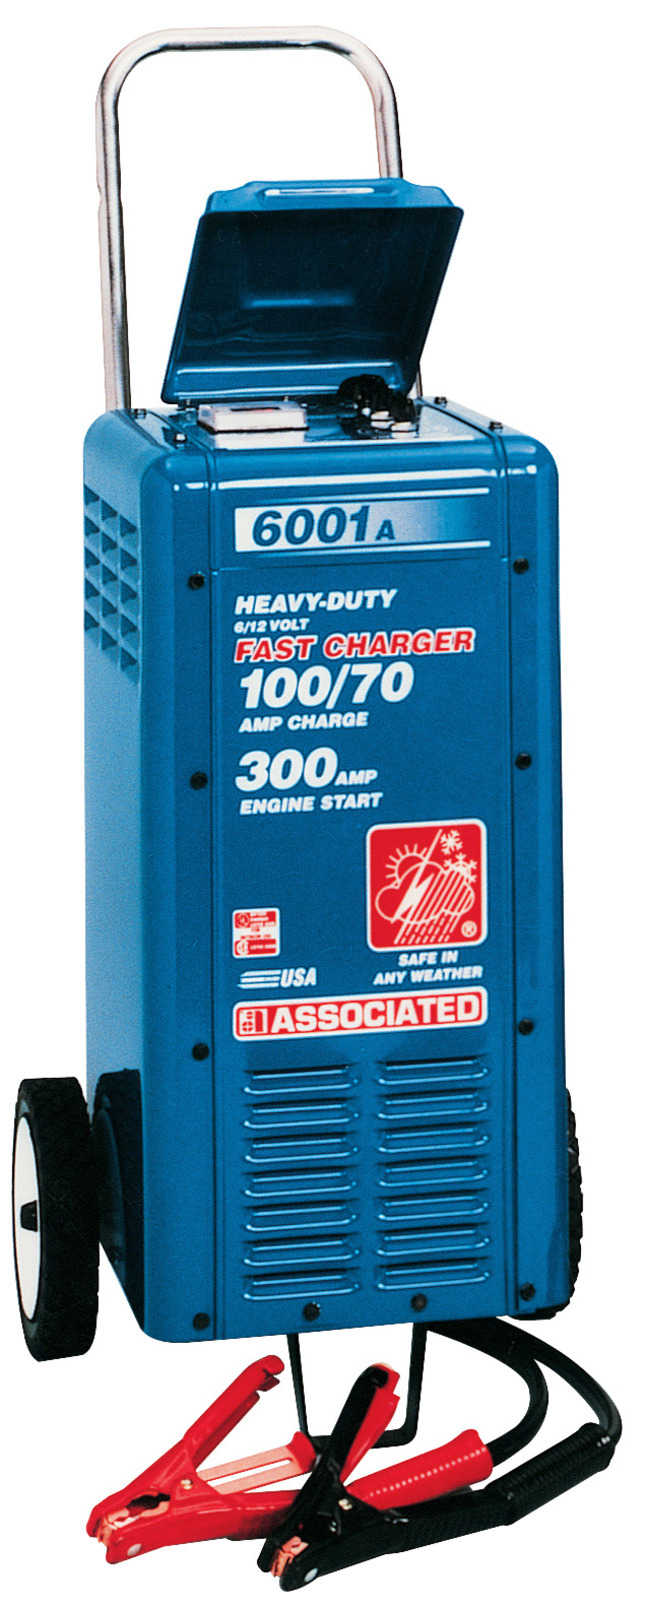 Battery Chargers, Car Battery Chargers, Portable Battery Chargers Supplies, Item Number 1046881